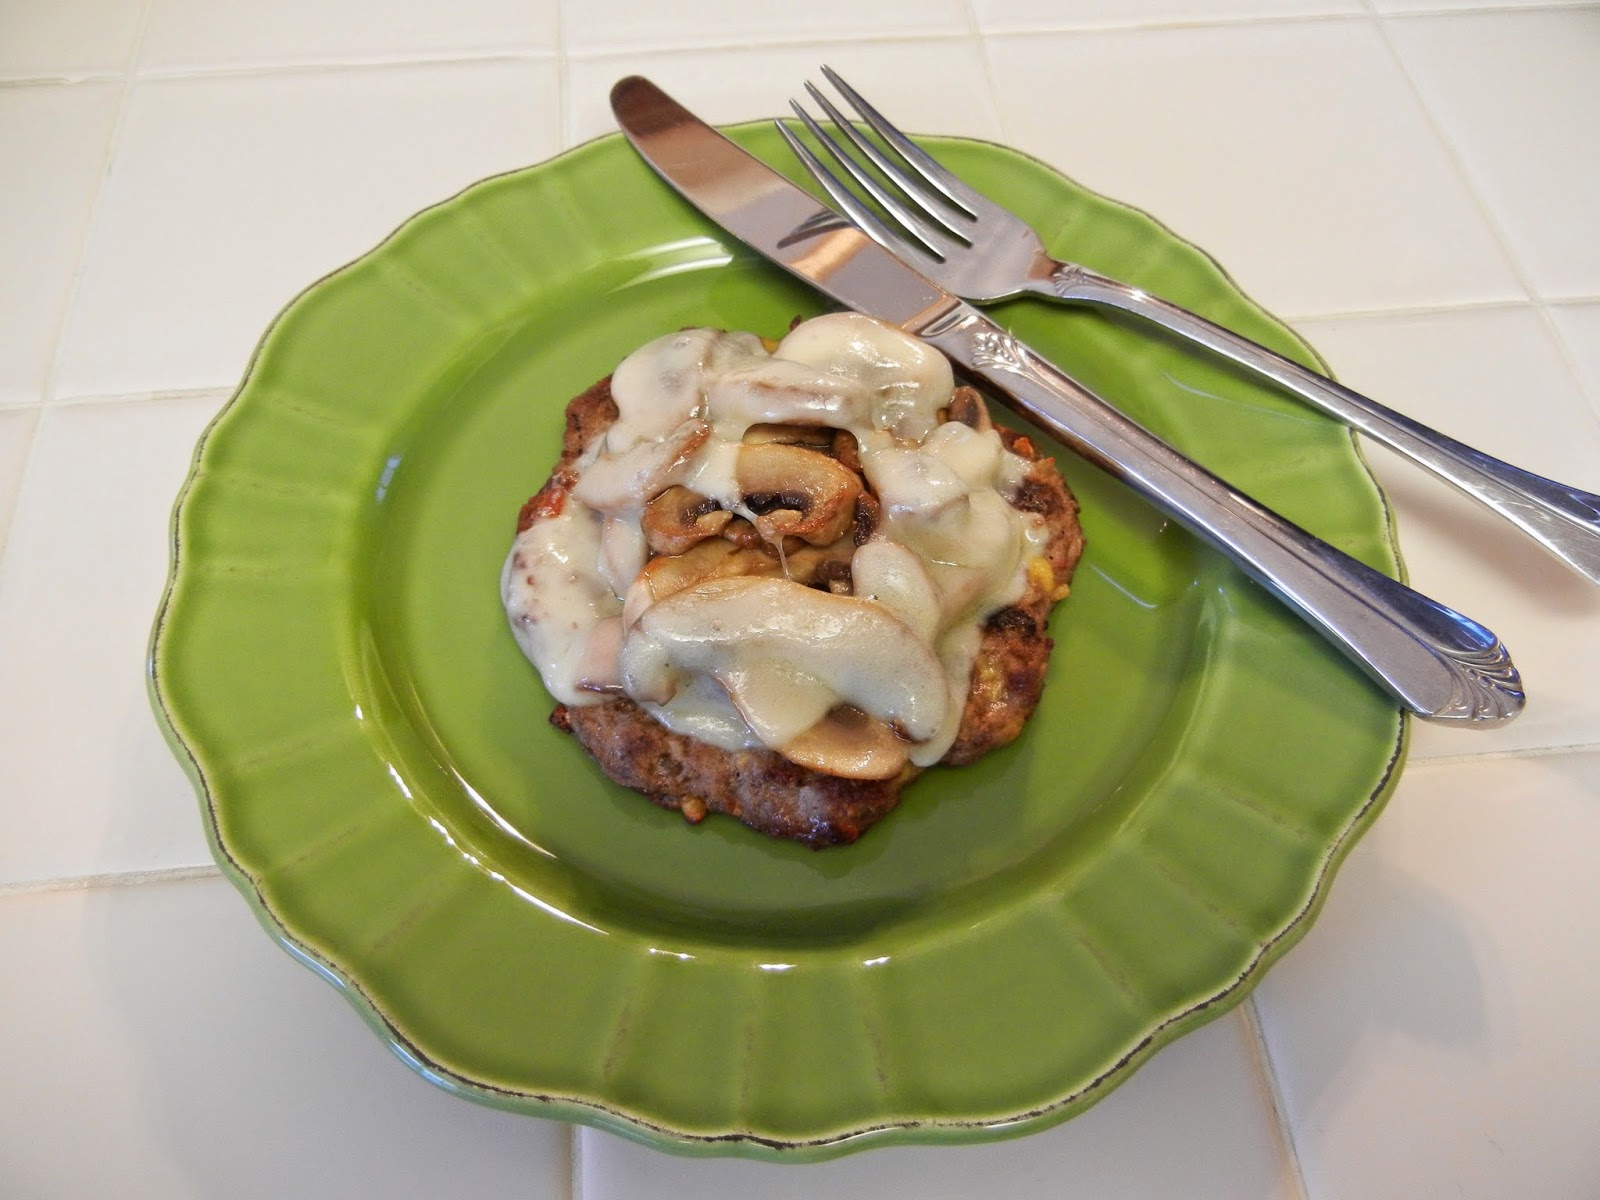 Eggface+Swiss+Mushroom+Burger+Low+Carb+No+Bun Weight Loss Recipes Post Weight Loss Surgery Menus: A day in my pouch